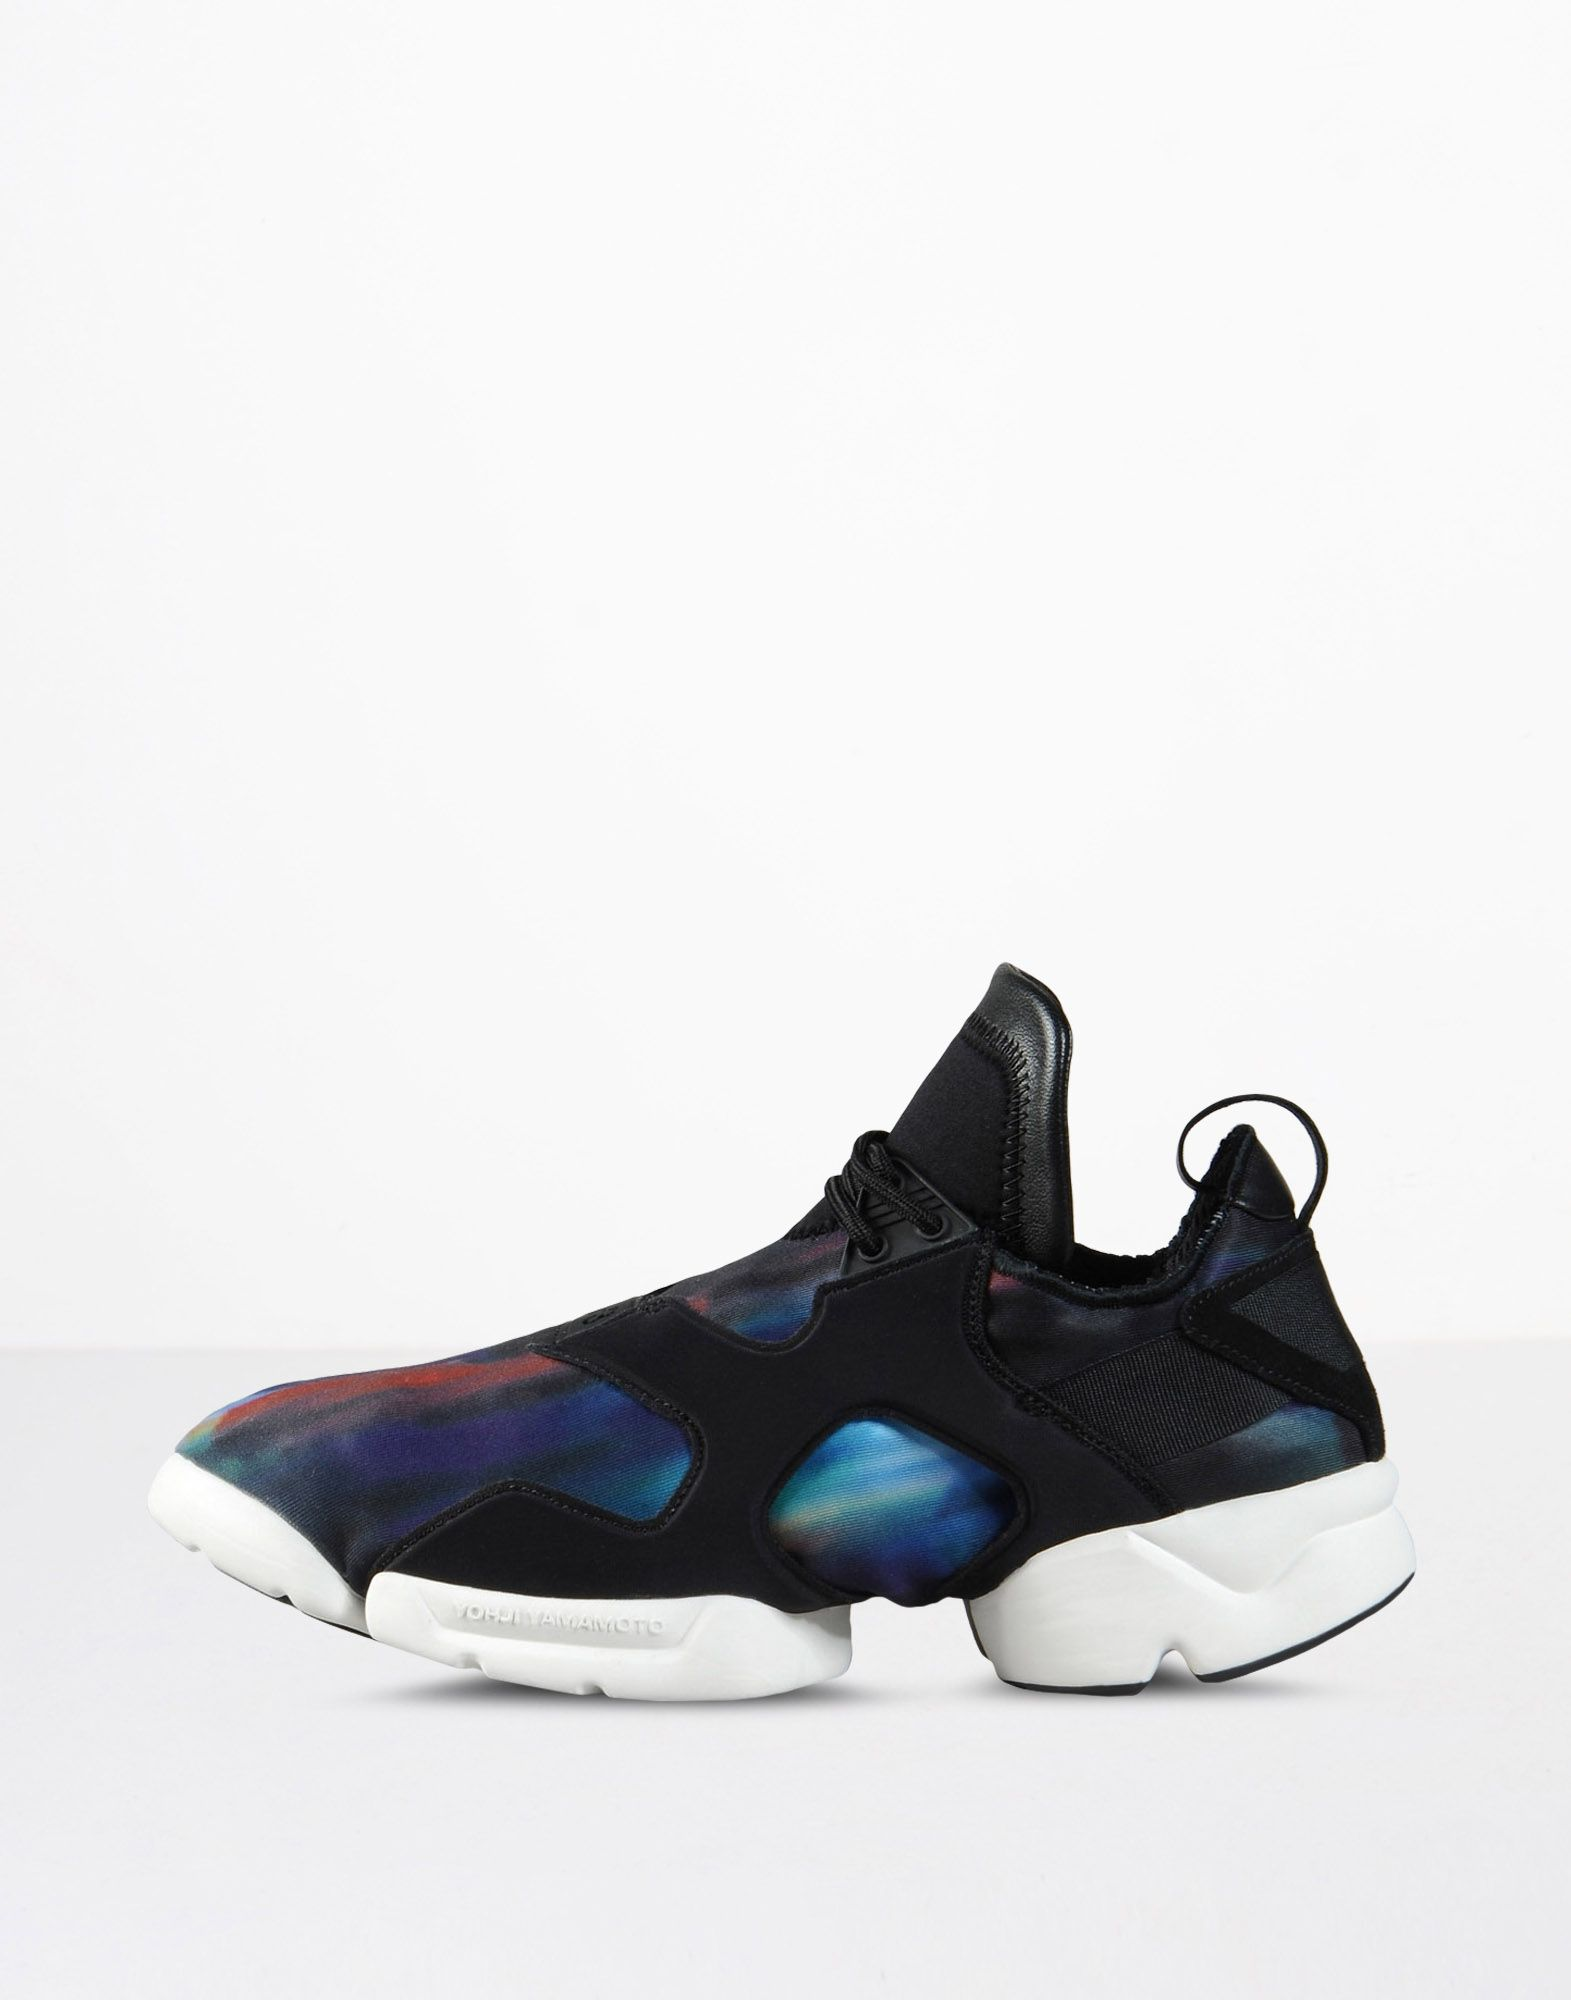 Adidas Y3 chaussures